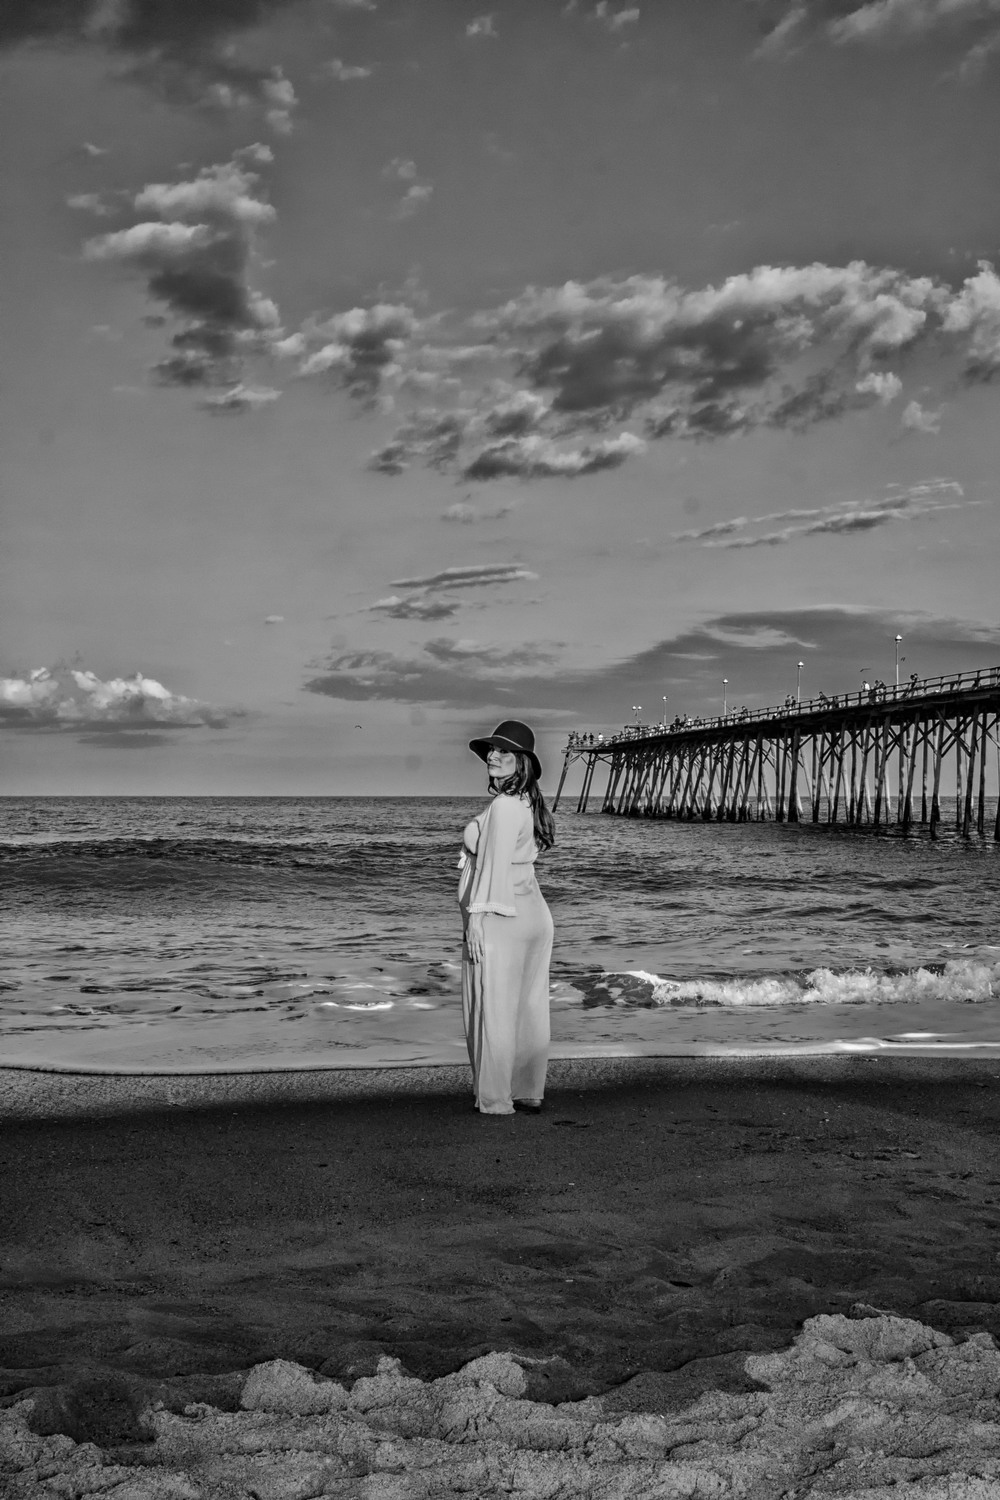 Kure_Beach_Maternity_Shoot_Tiffany_Abruzzo_Photography_46.jpg